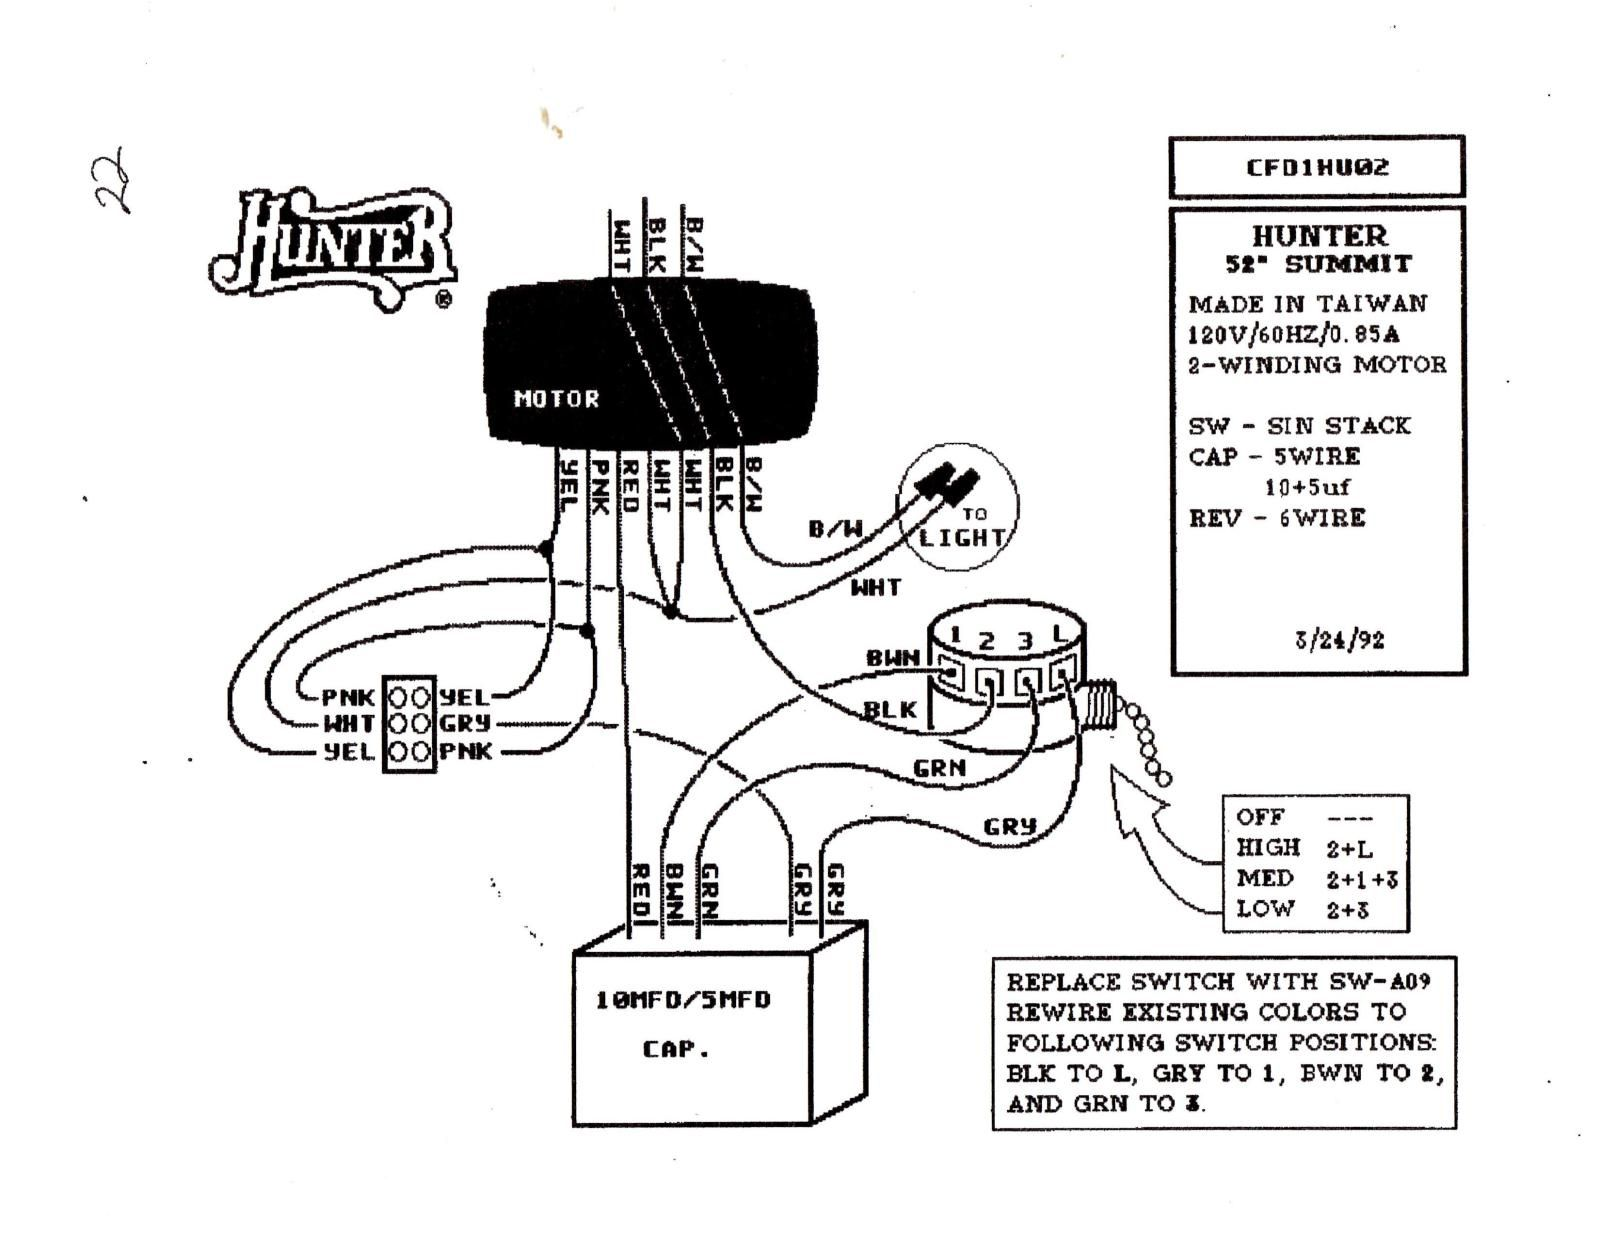 Hunter Ceiling Fan Speed Switch Wiring Diagram Hunter Ceiling Fans Ceiling Fan Wiring Ceiling Fan Switch